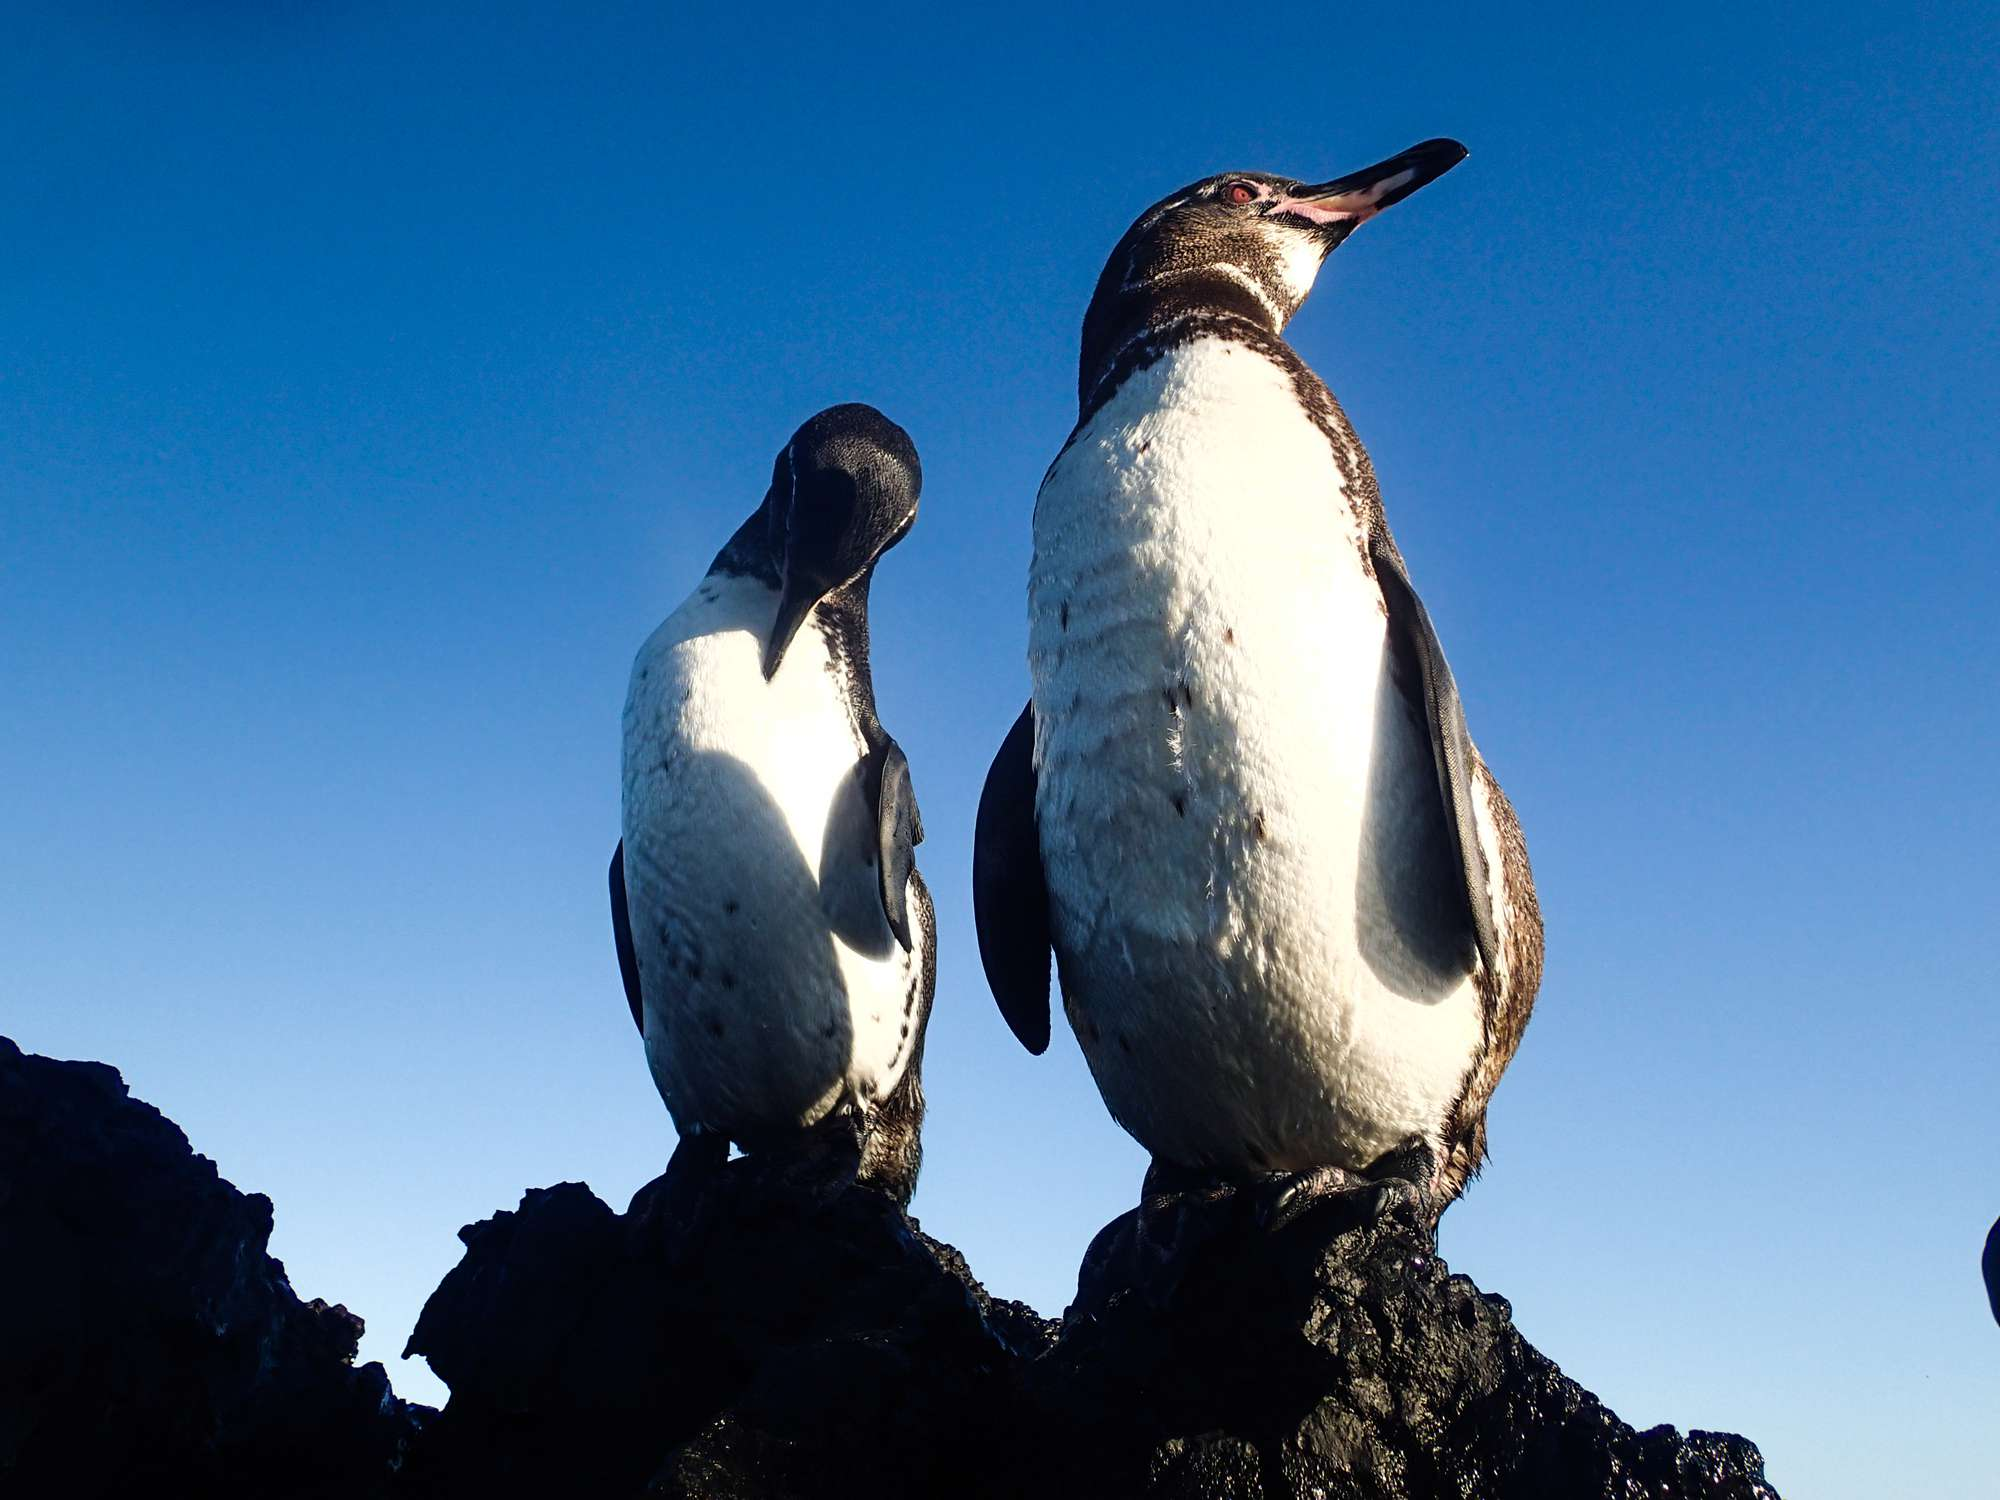 A pair of Galapagos penguins stand on a rocky overlook on a day with a beautiful blue sky.